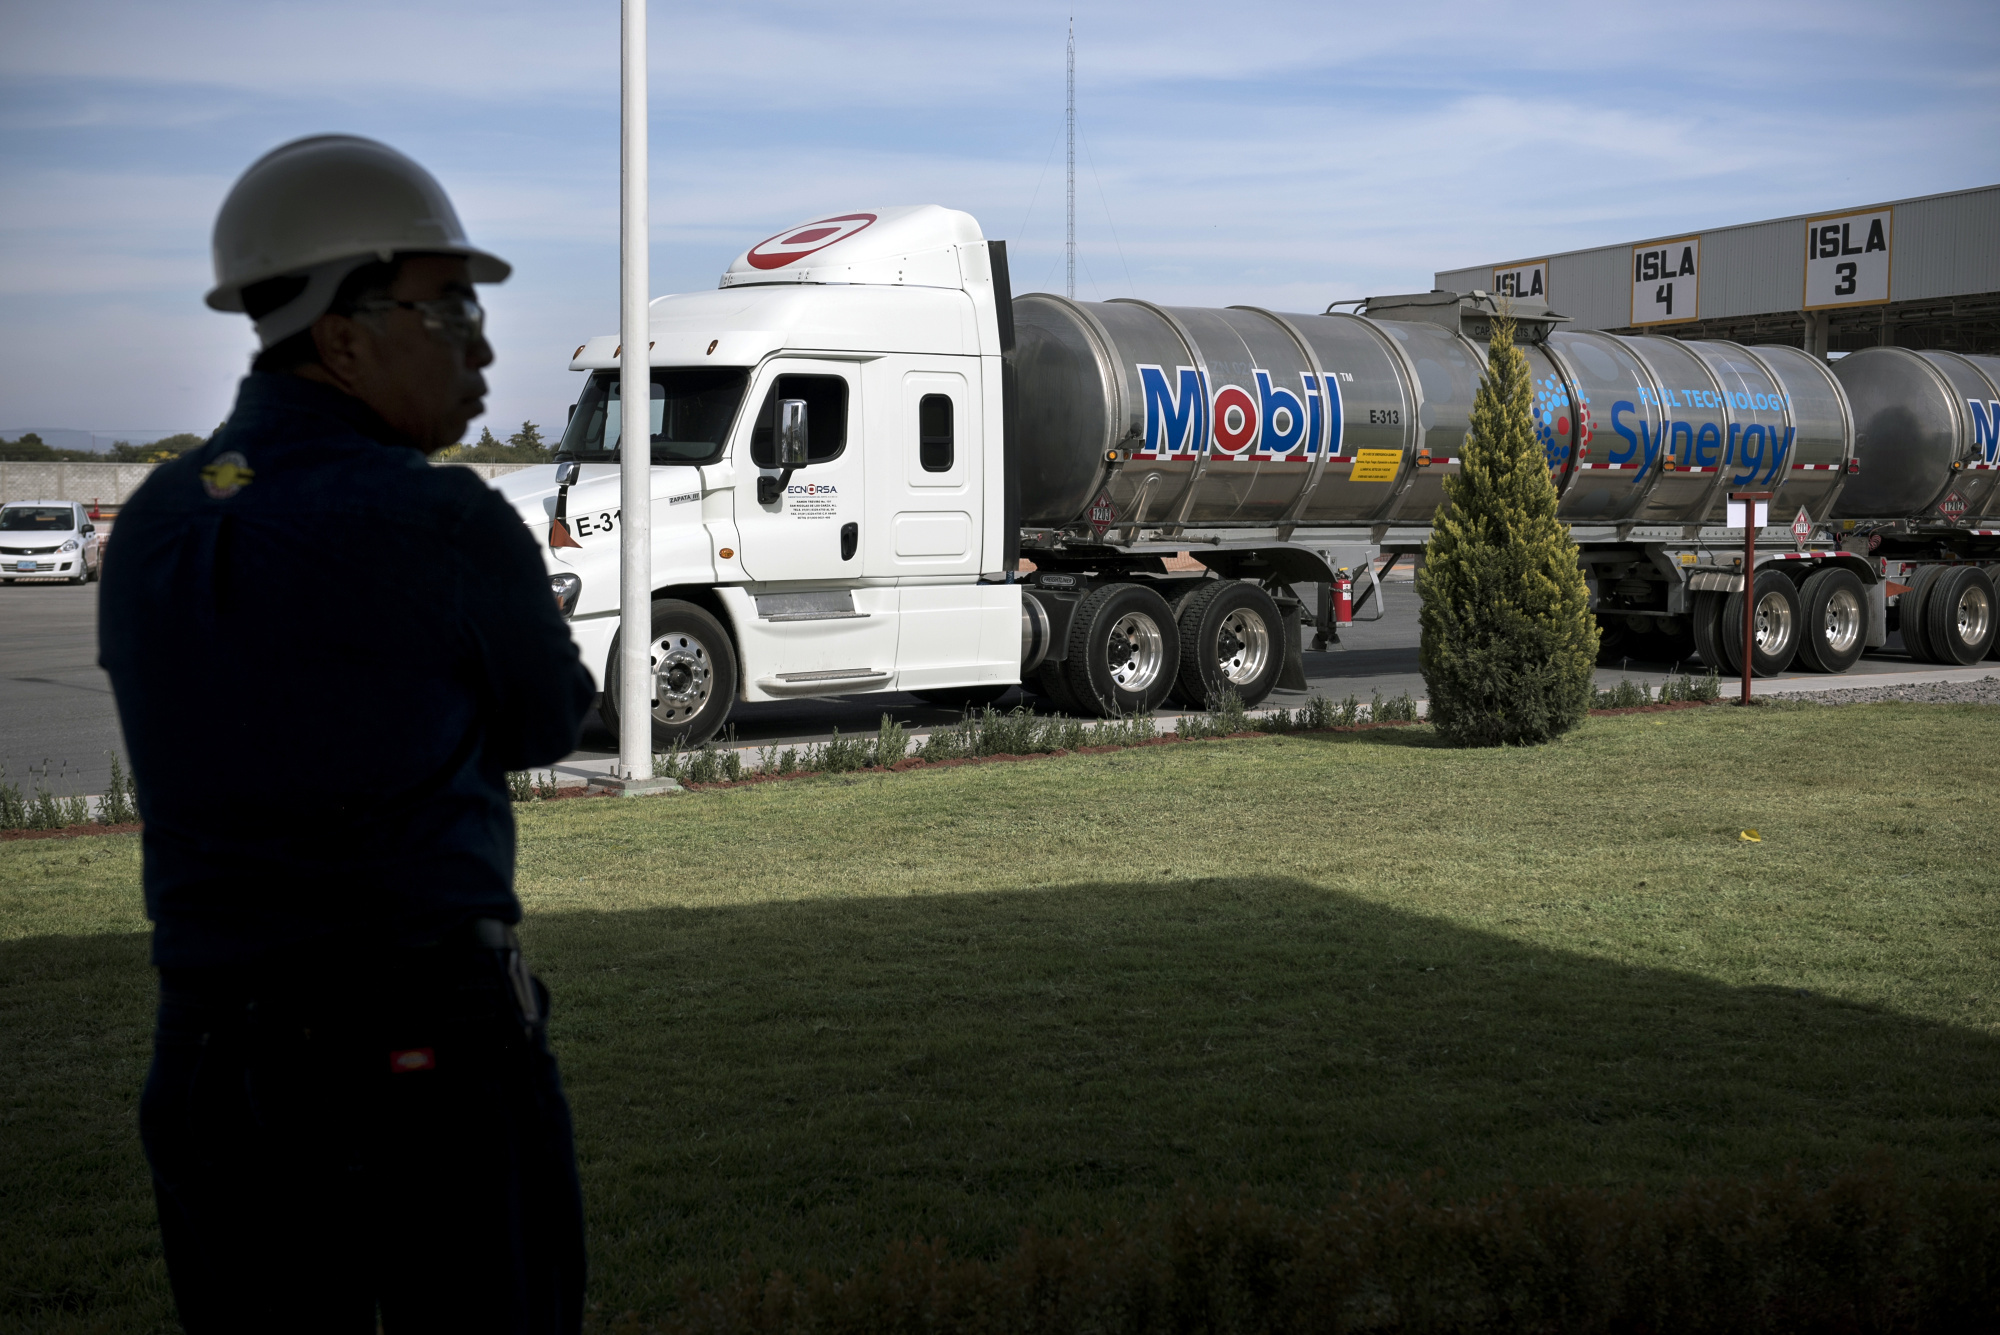 An employee stands in front of a fuel tanker during the unveiling of the Exxon Mobil Corp. fuel terminal in San Jose Iturbide, Mexico, on Wednesday, Dec. 6, 2017. Exxon Mobil Corp. is joining Chevron Corp. and other U.S. refiners to supply the newly free Mexican fuel market. Exxon Mobil indicated Wednesday that it will open 50 service stations by the end of first quarter and invest more than $300 million in Mexico's energy sector. Photographer: Jonathan Levinson/Bloomberg